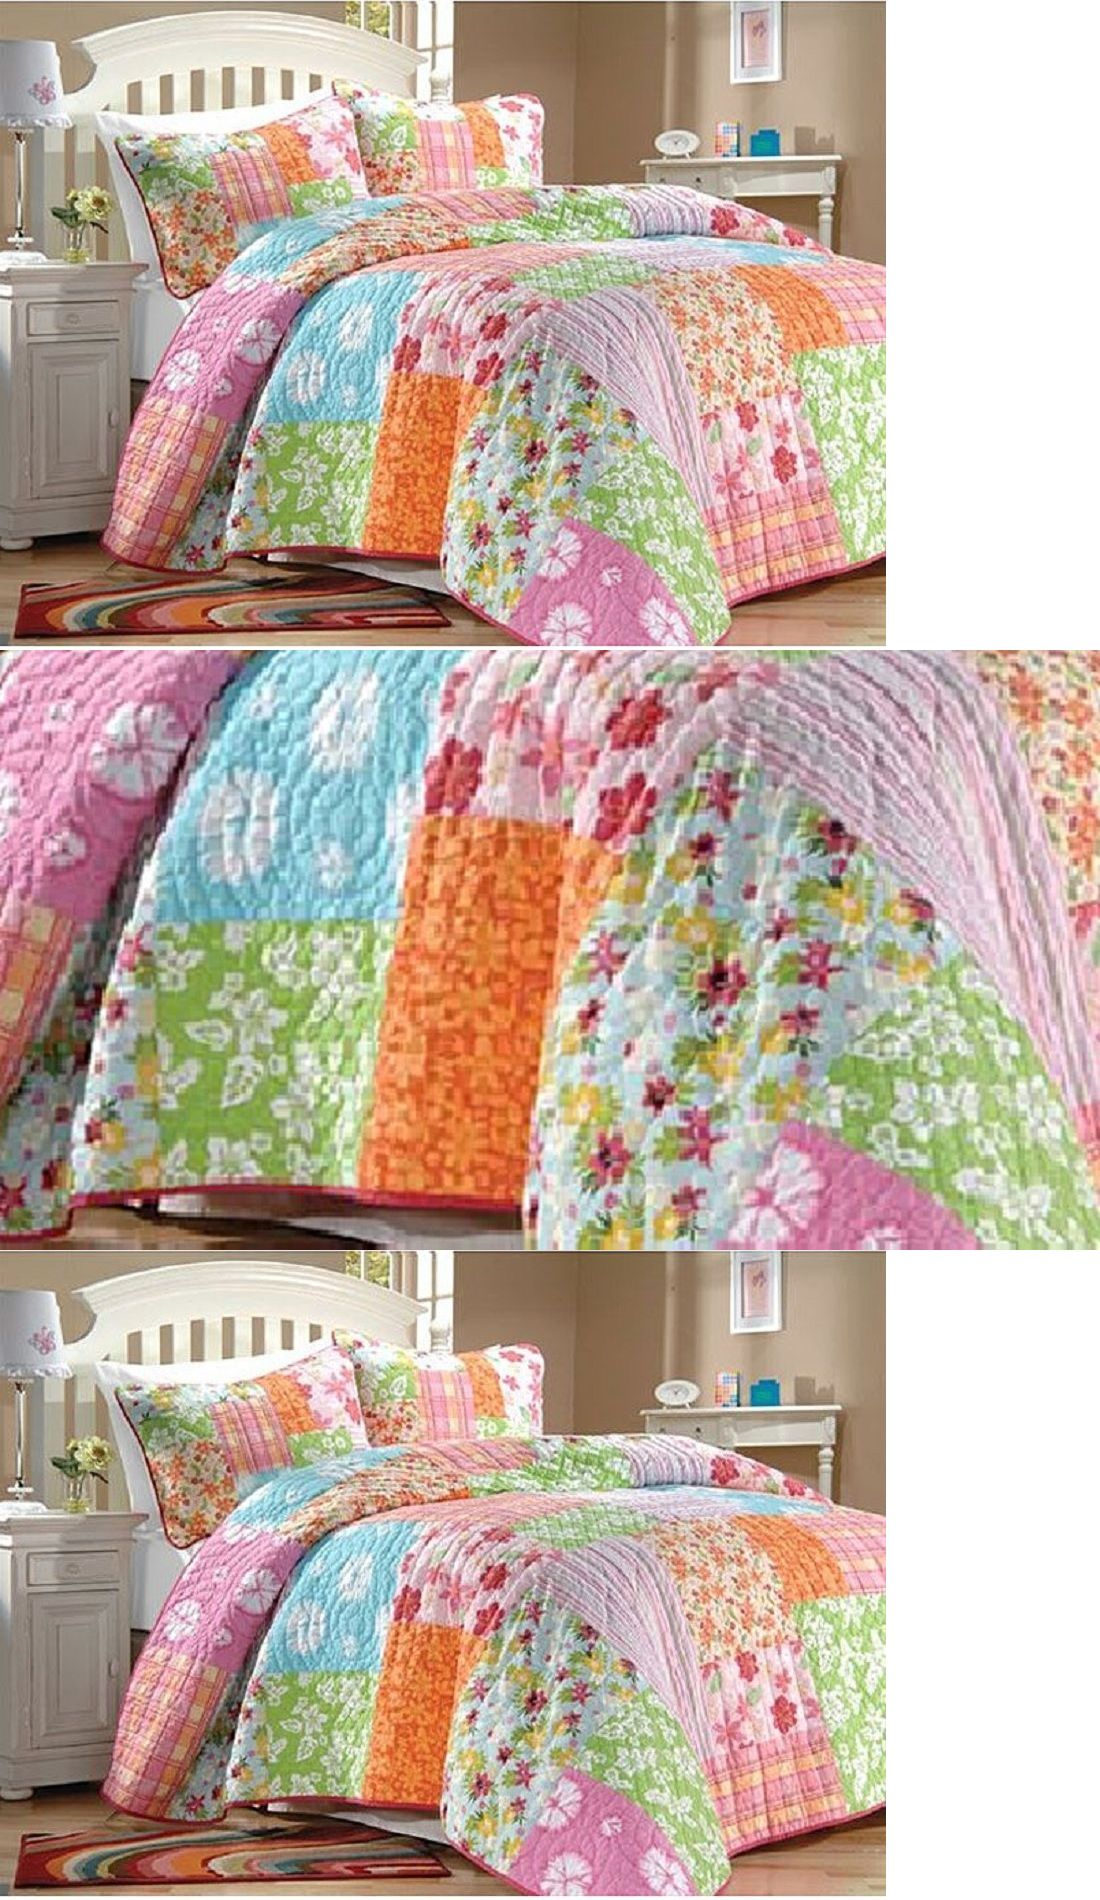 Kids at Home: Tropical Comforter Set Twin Quilt Pink Patchwork Floral  Island Teen Girls -